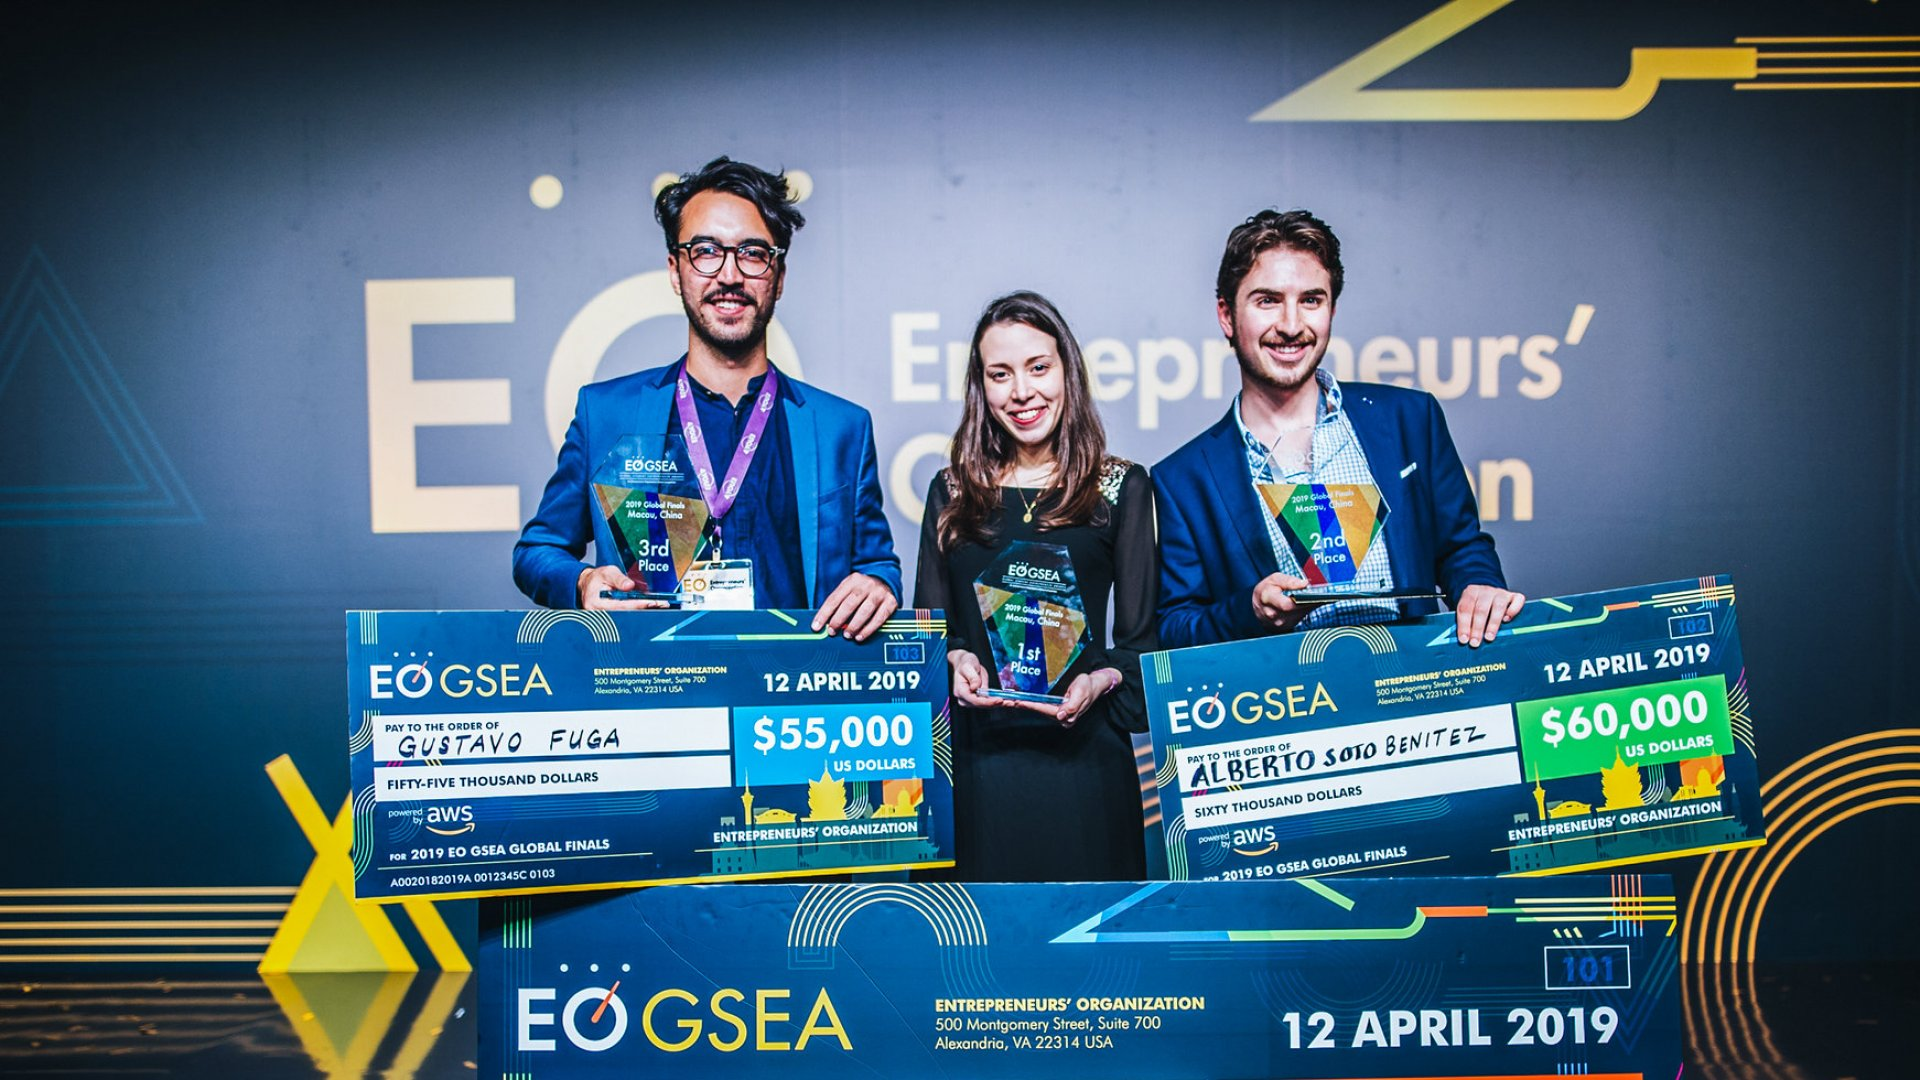 Alberto Soto Benítez (right) received a cash prize as first runner-up at the 2019 Entrepreneurs' Organization GSEA Global Finals, as did finalists Daniela Blanco and Gustavo Fuga.